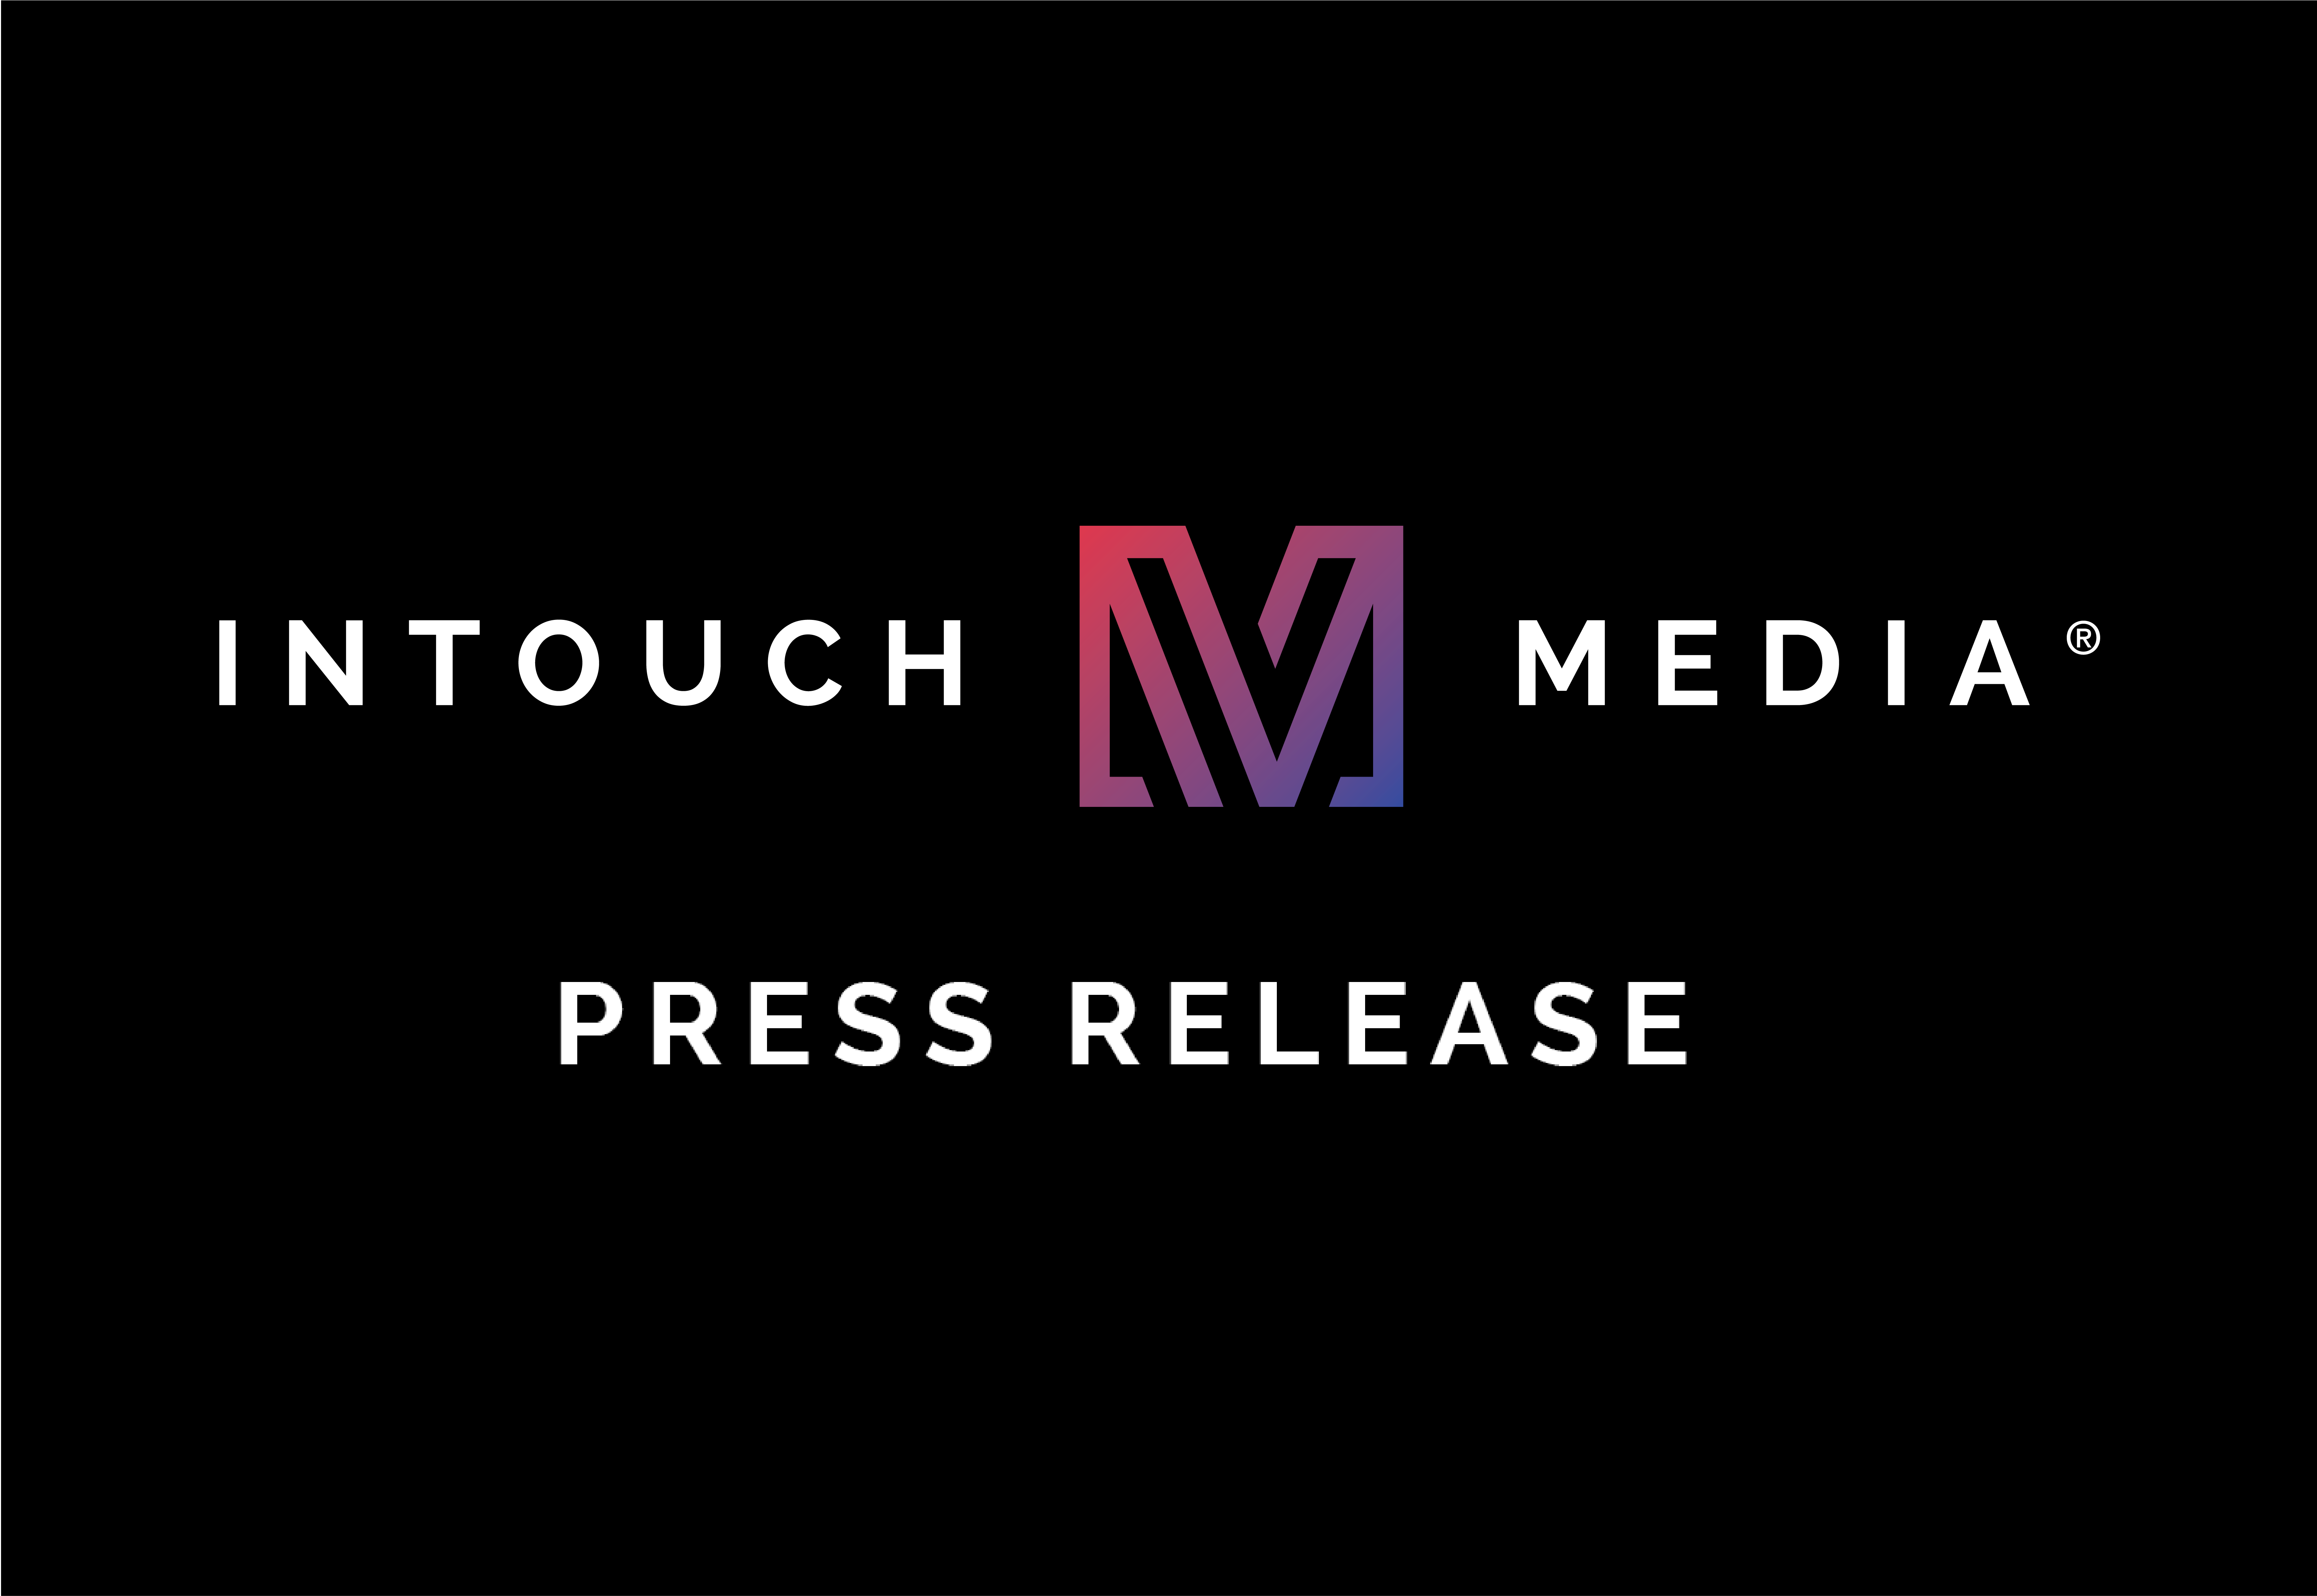 Intouch Media Releases New Whitepaper Covering Four Critical Industry Trends